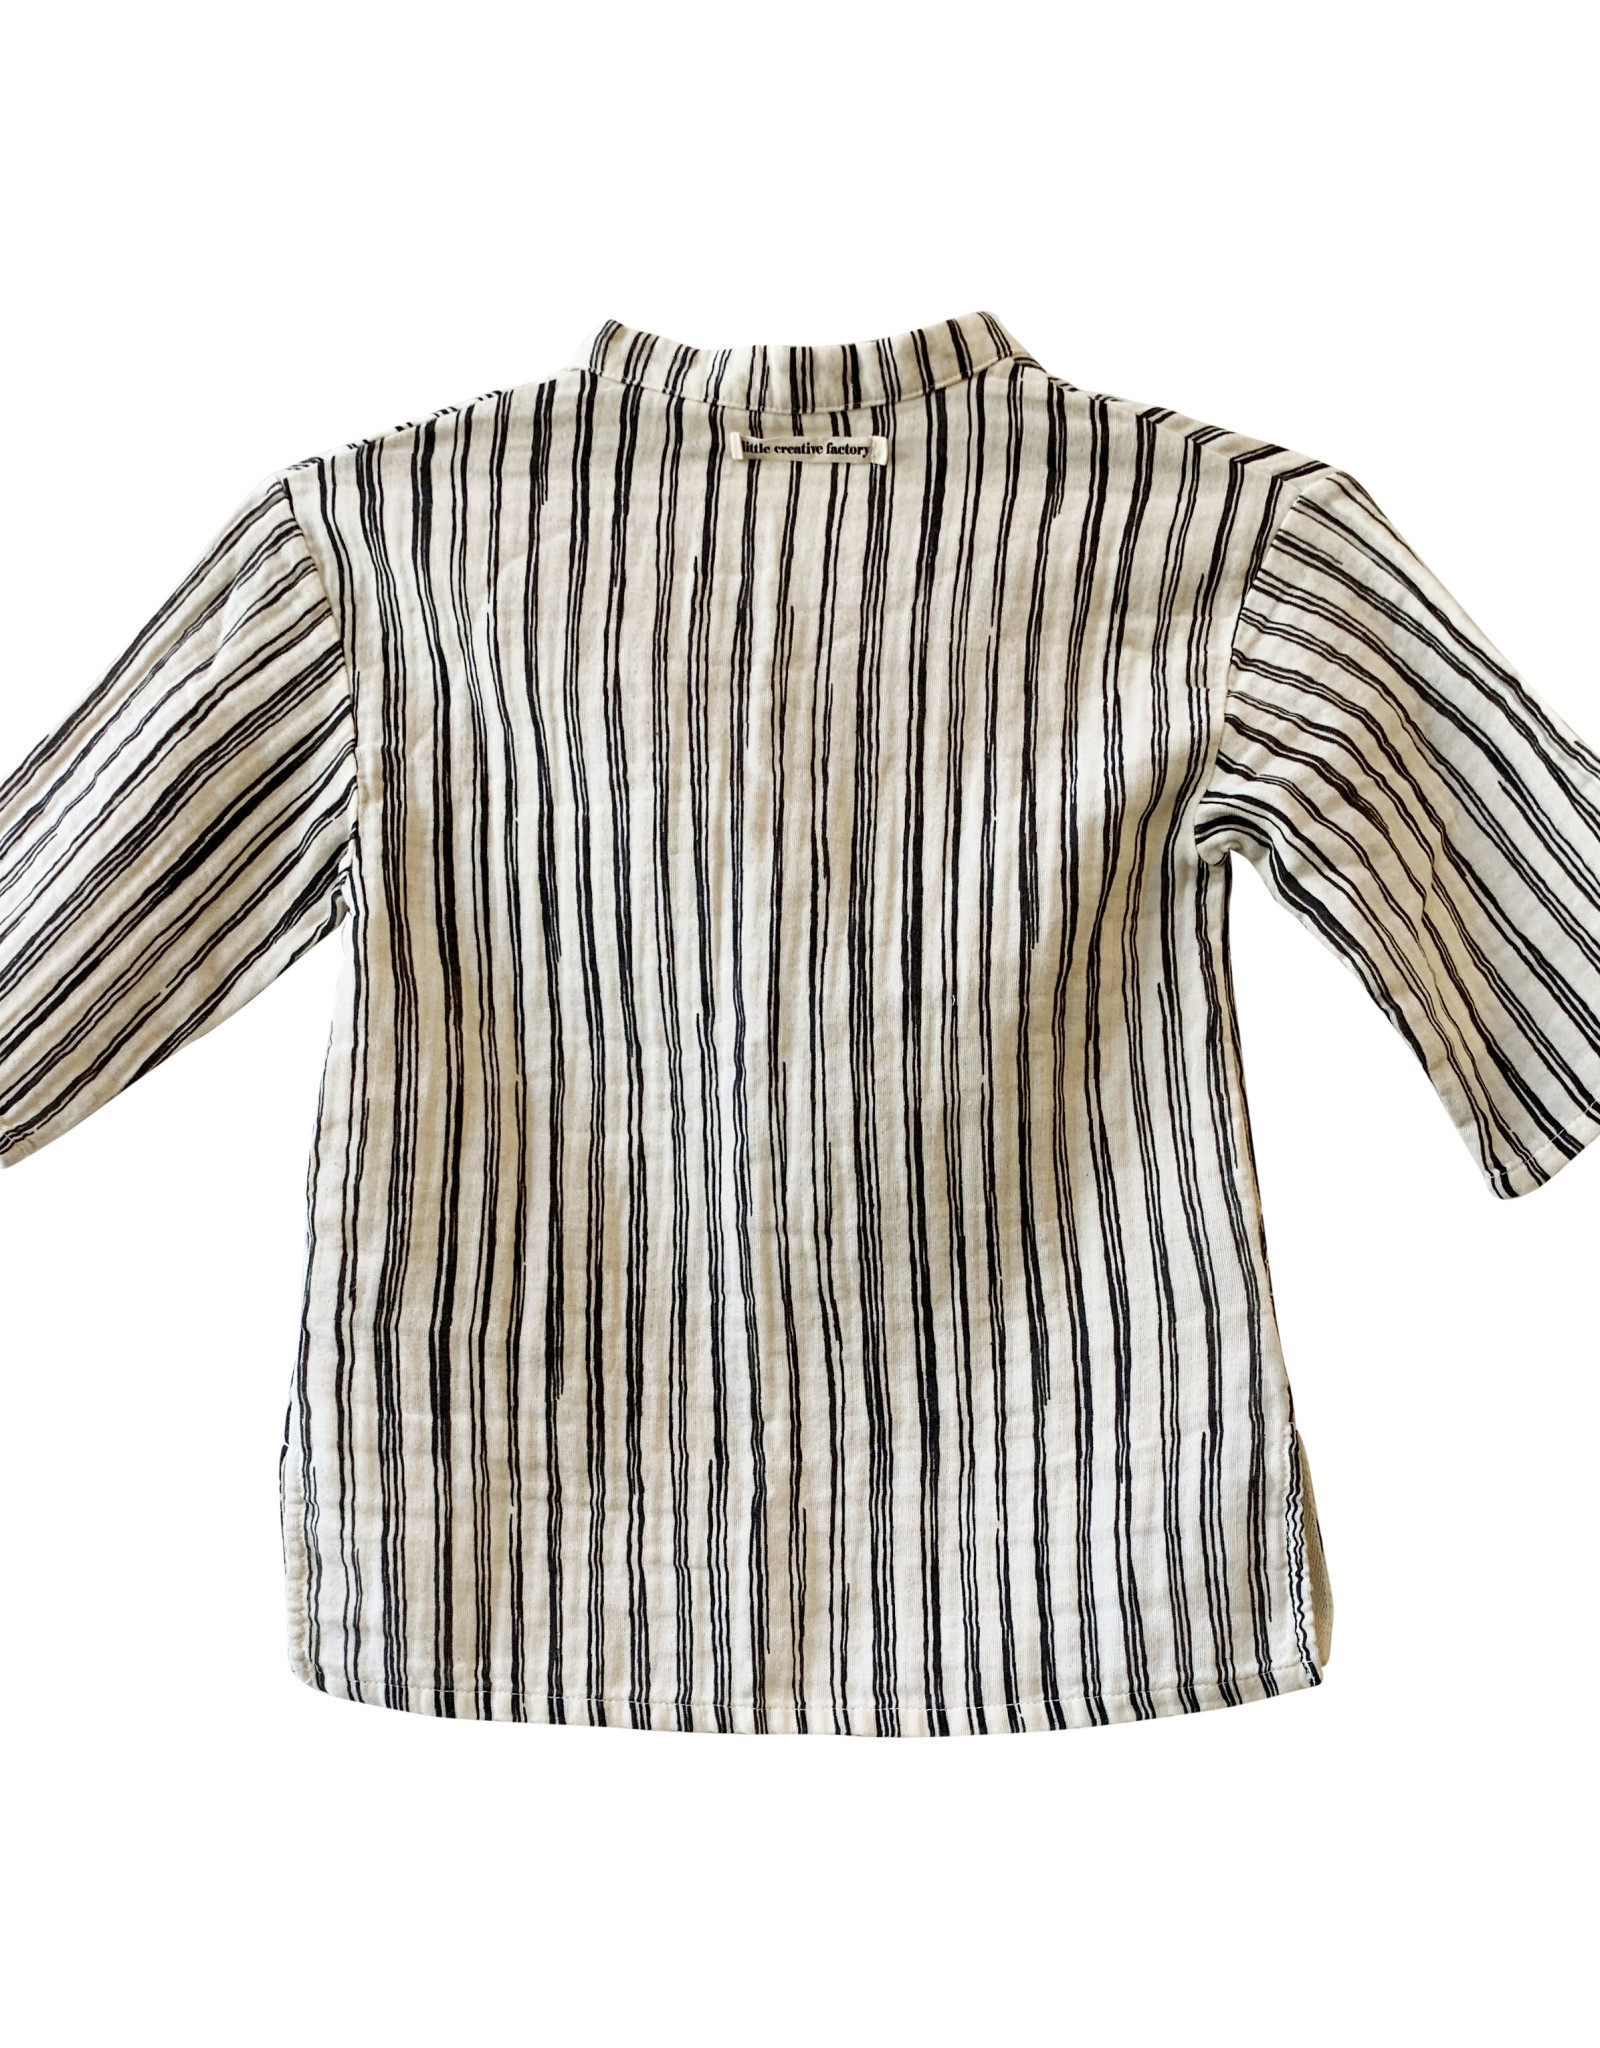 Little Creative Factory Bamboo Striped Long Sleeve Shirt